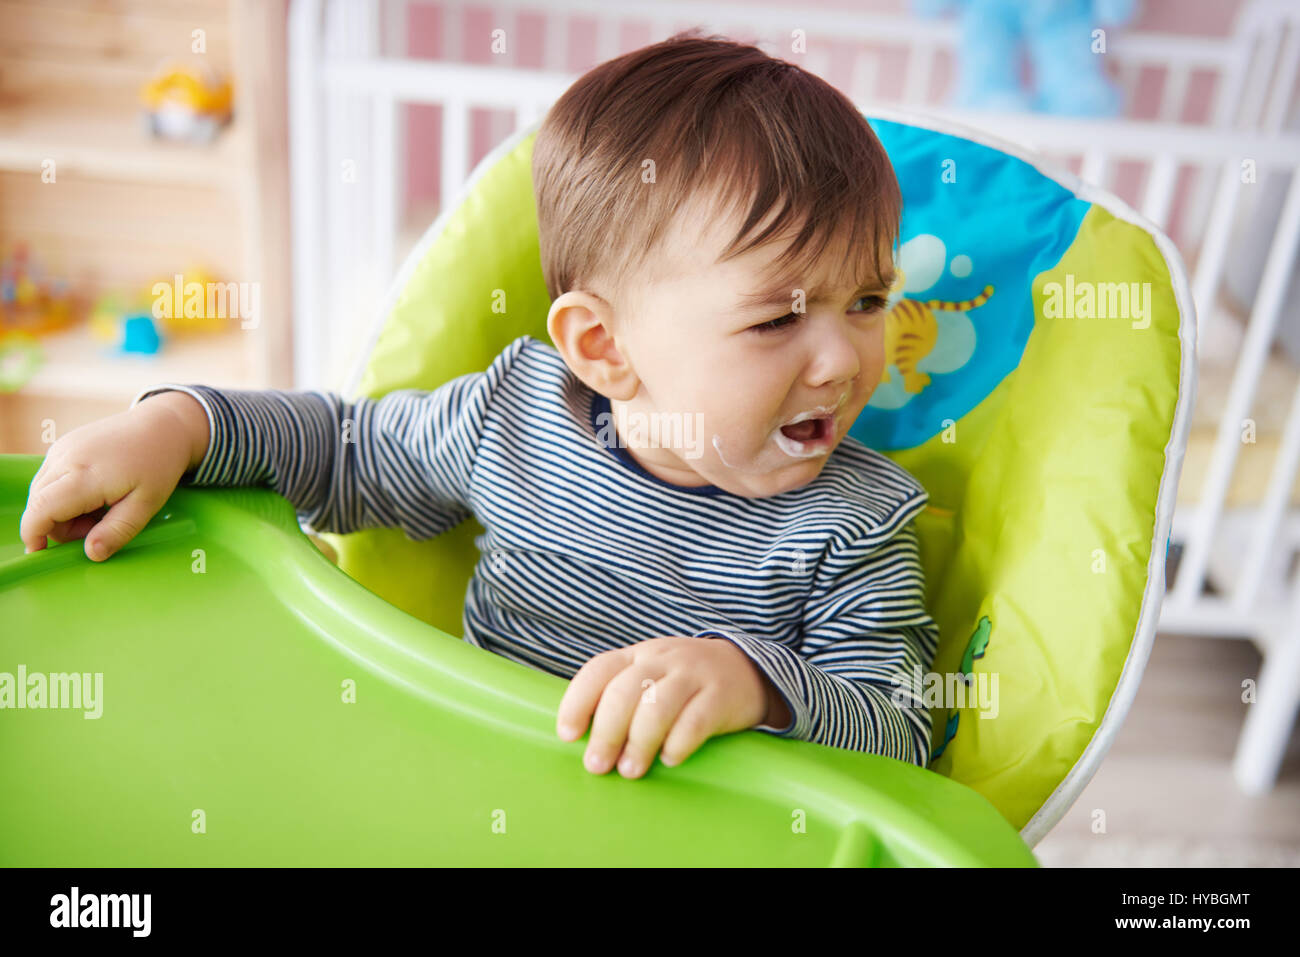 Crying baby boy over feeding time - Stock Image